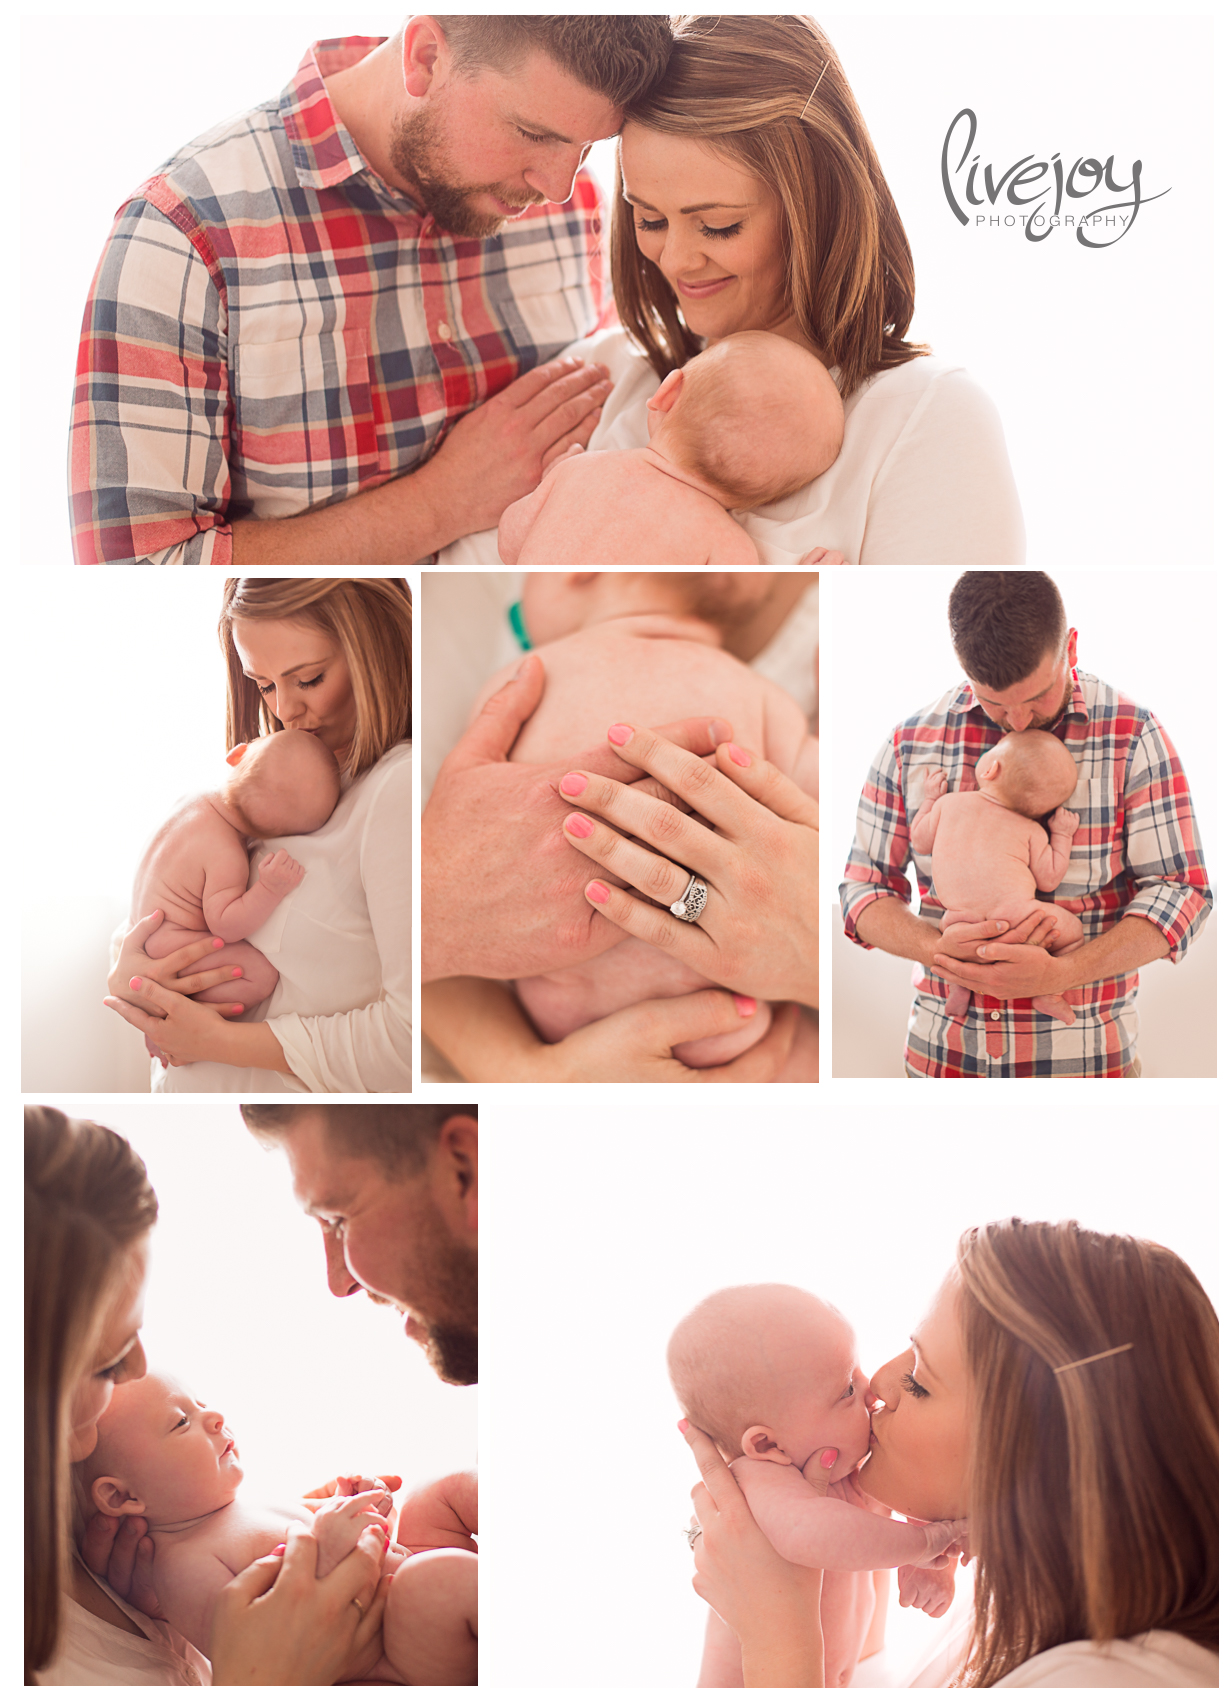 Baby Photos with Family   LiveJoy Photography